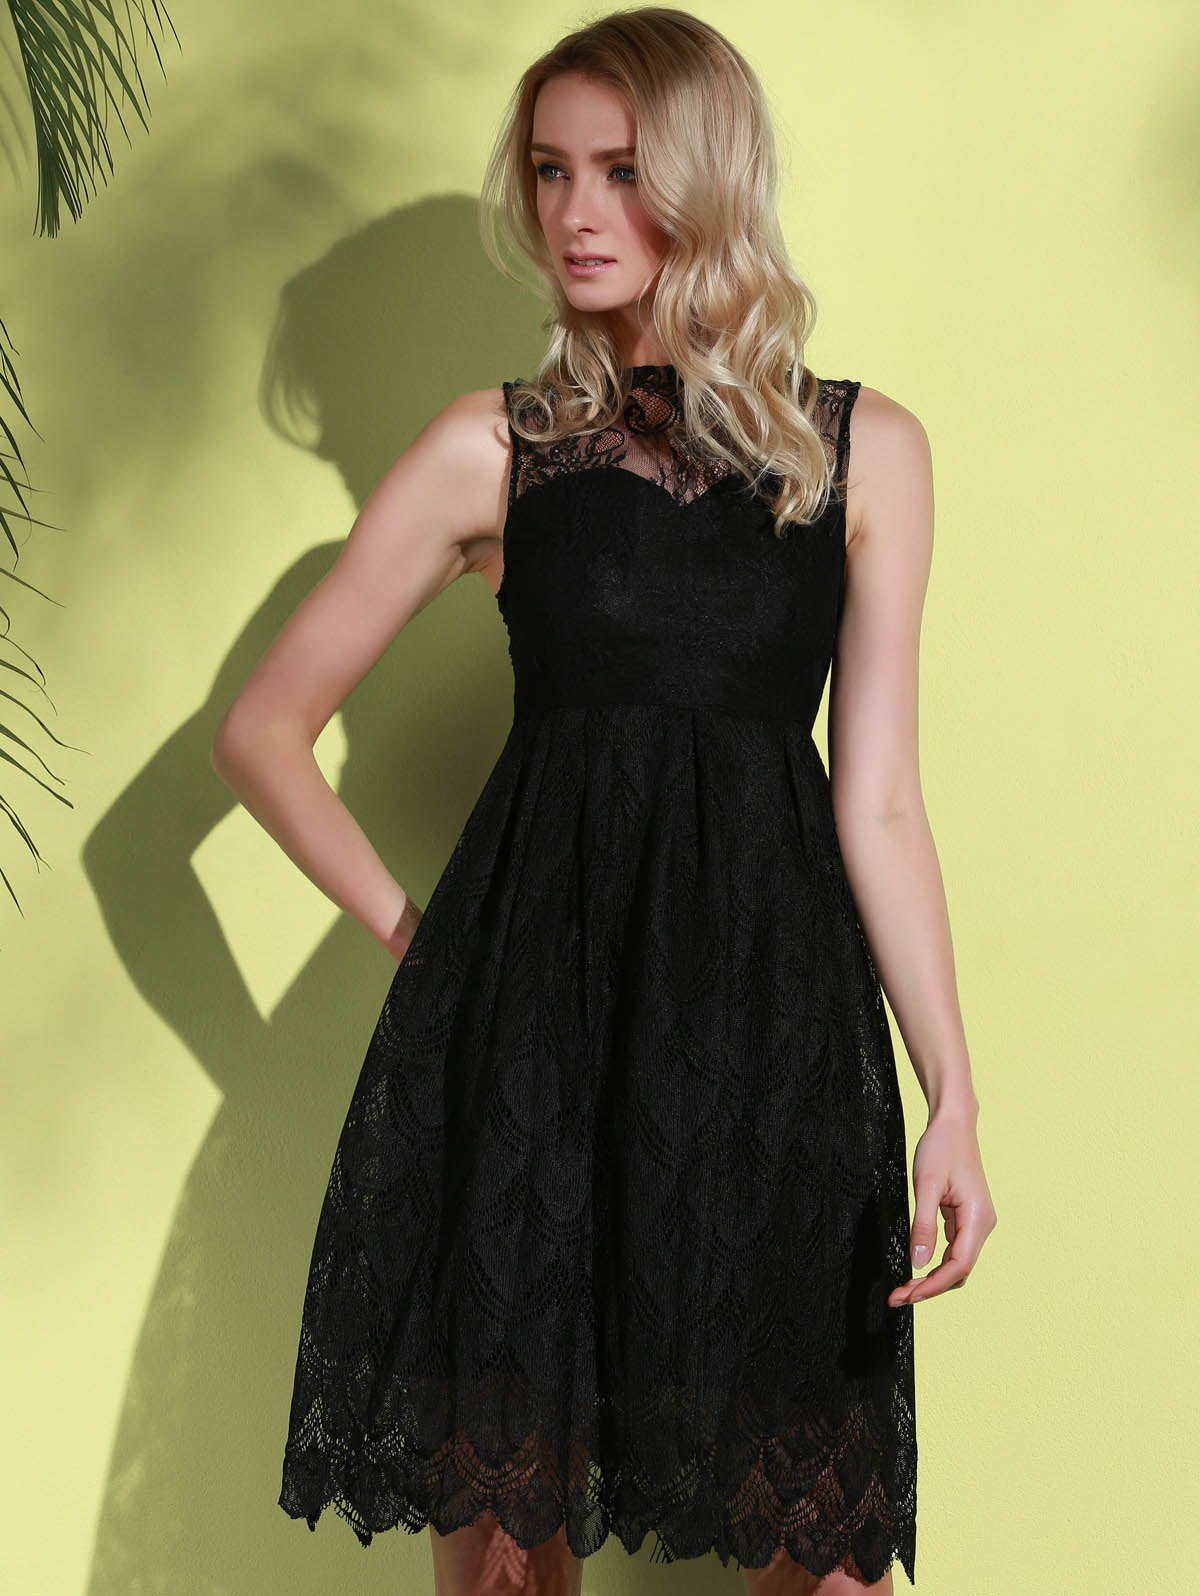 Stylish Round Neck Sleeveless Hollow Out Solid Color Lace Women's Dress - BLACK S